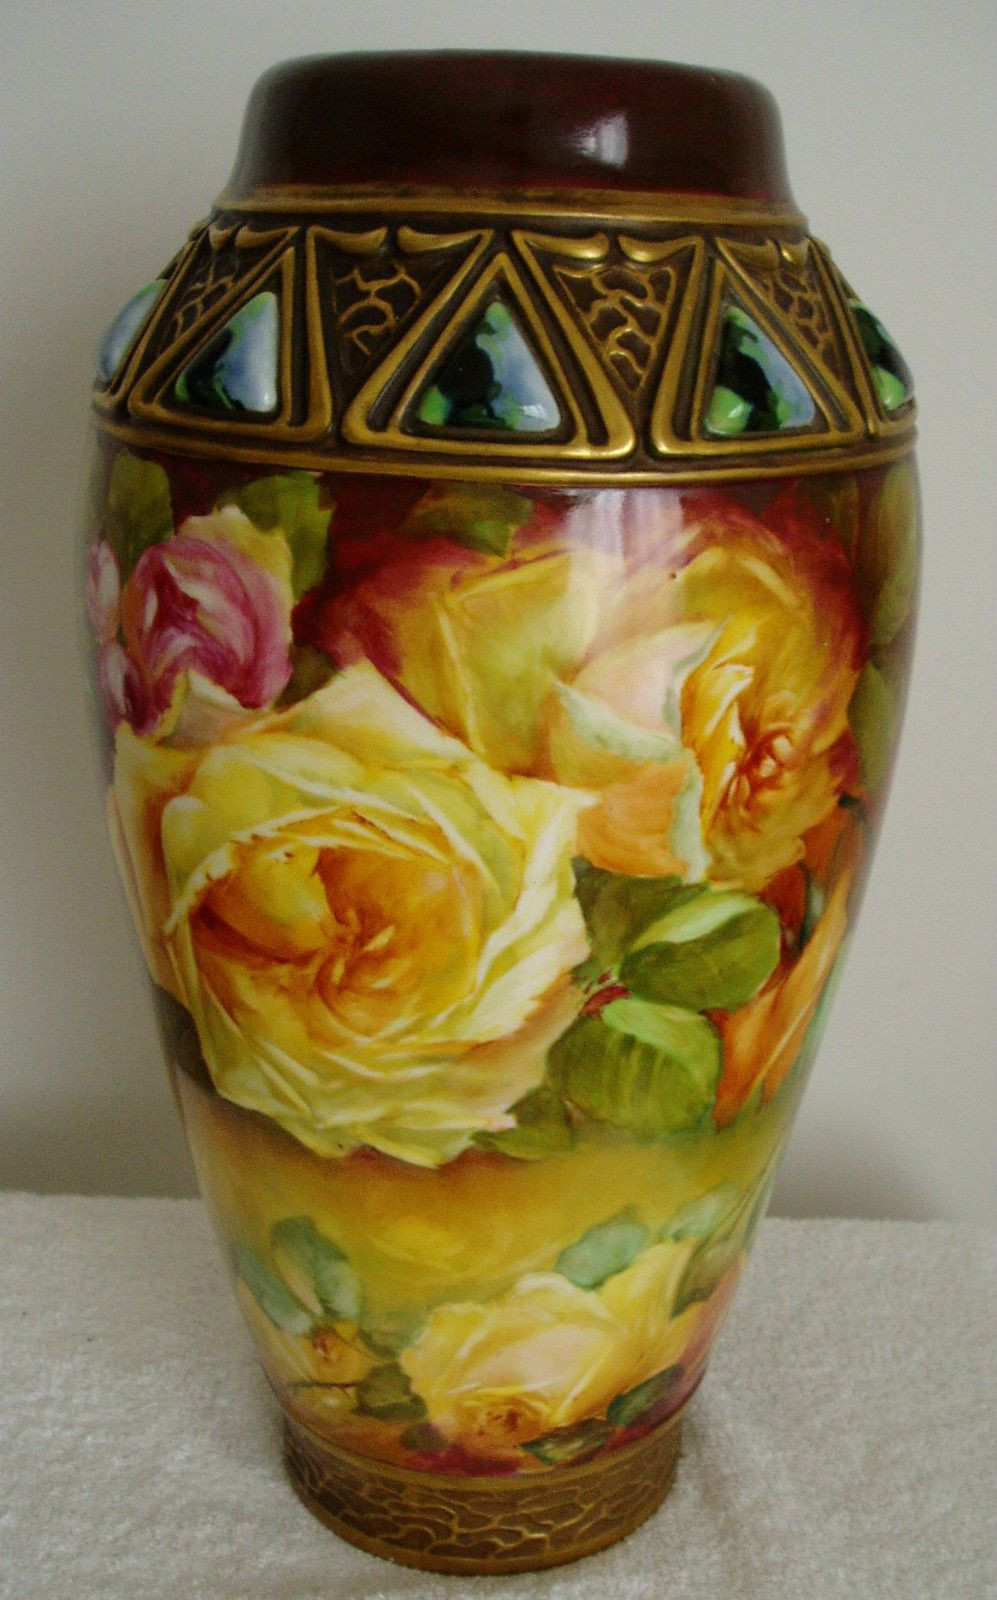 Love Bird Vase Of Habsburg Austria Vintage Large Art Pottery Vase Hand Painted Roses Intended for Habsburg Austria Vintage Large Art Pottery Vase Hand Painted Roses Ebay